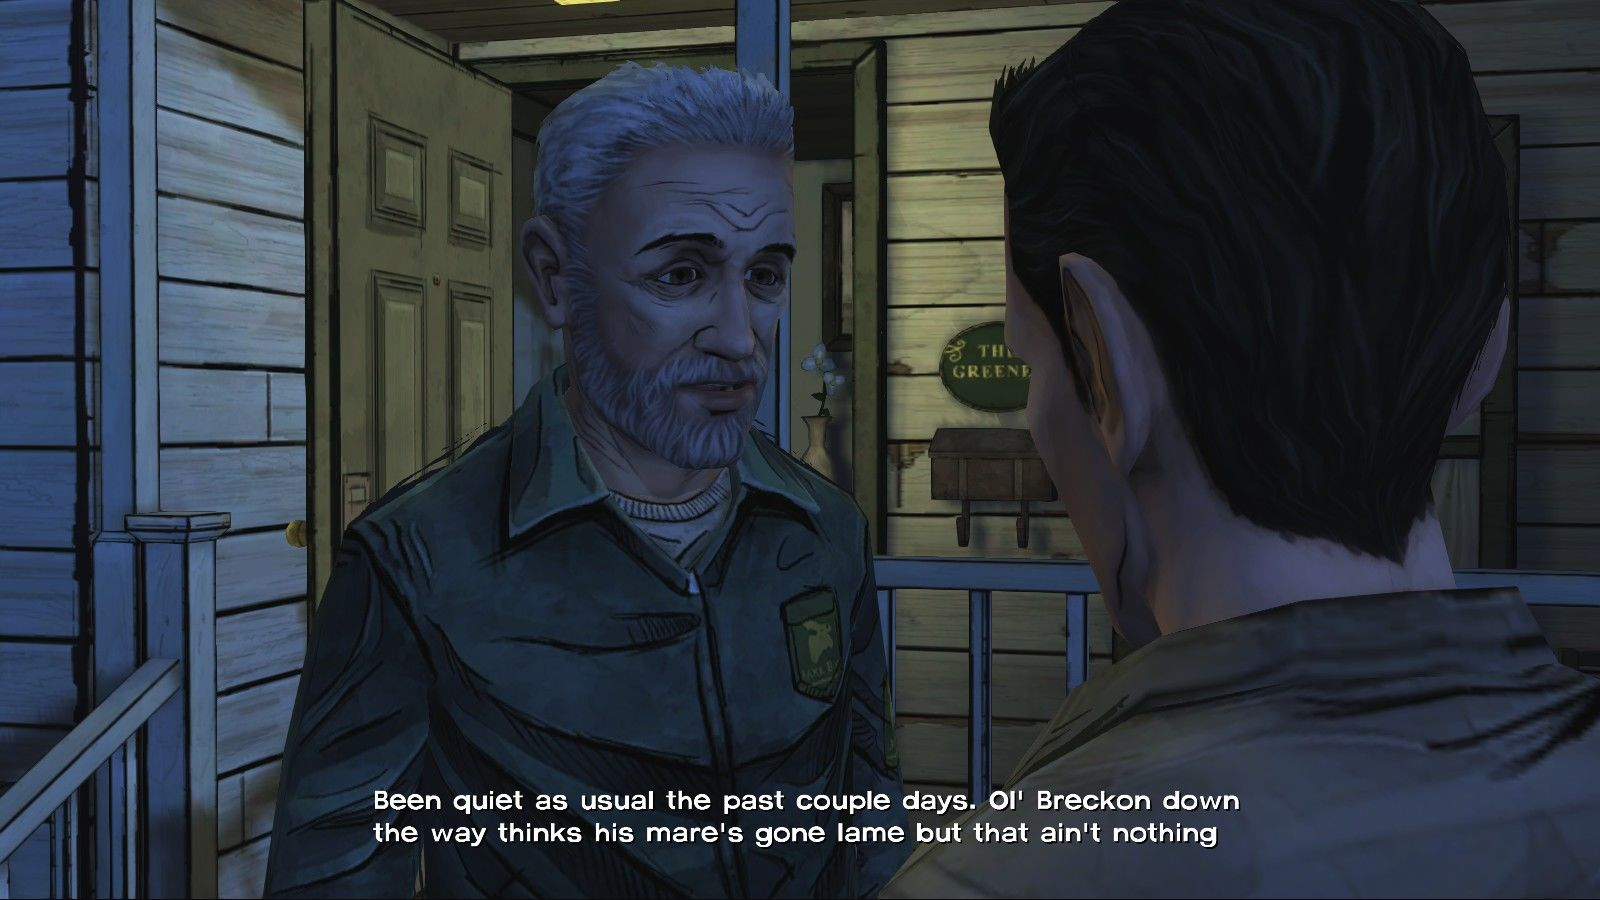 The Walking Dead Windows Episode 1 - Hershel is one of the characters from the comics appearing in the game